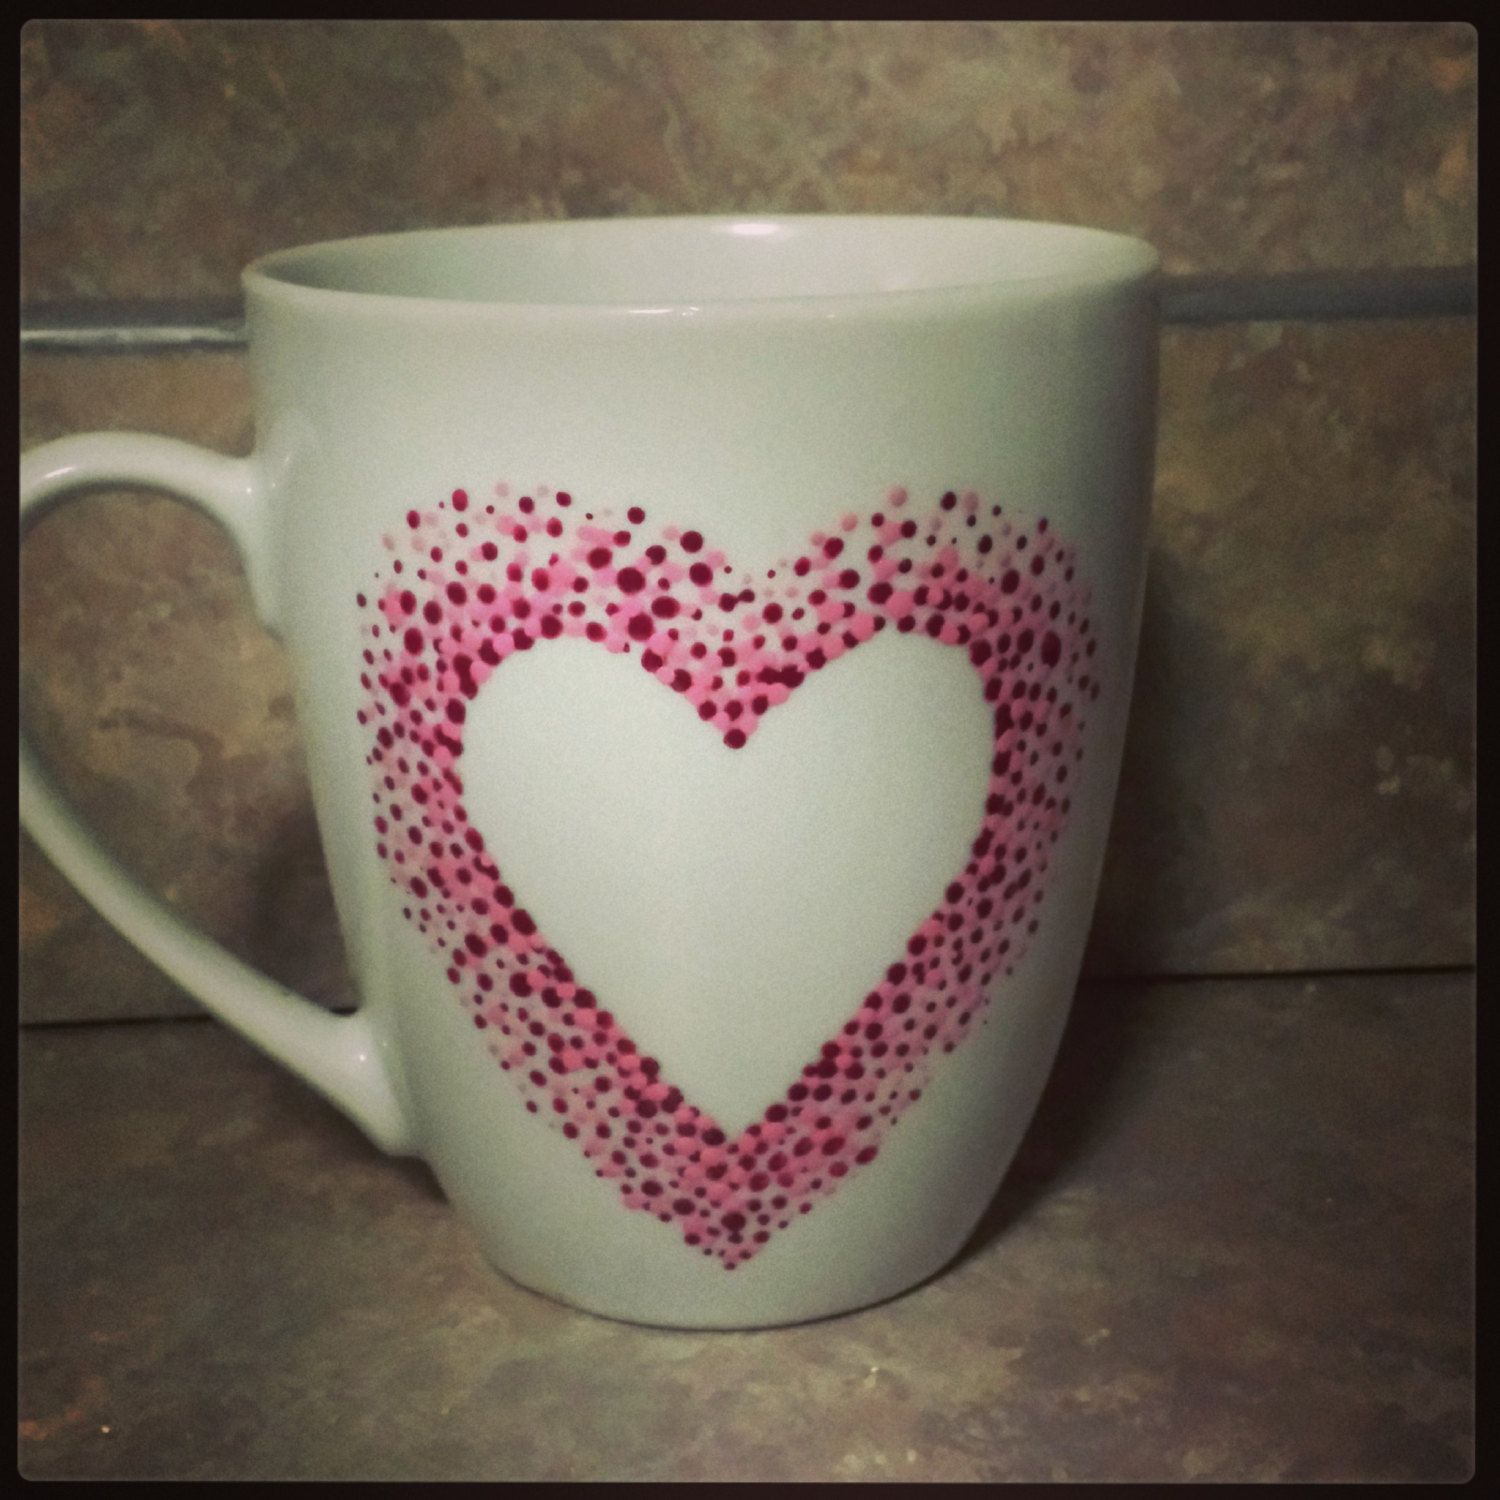 Love the for valentines day pink heart coffee mug by sarahmarie28 love the for valentines day pink heart coffee mug by sarahmarie28 on etsy 1200 voltagebd Image collections